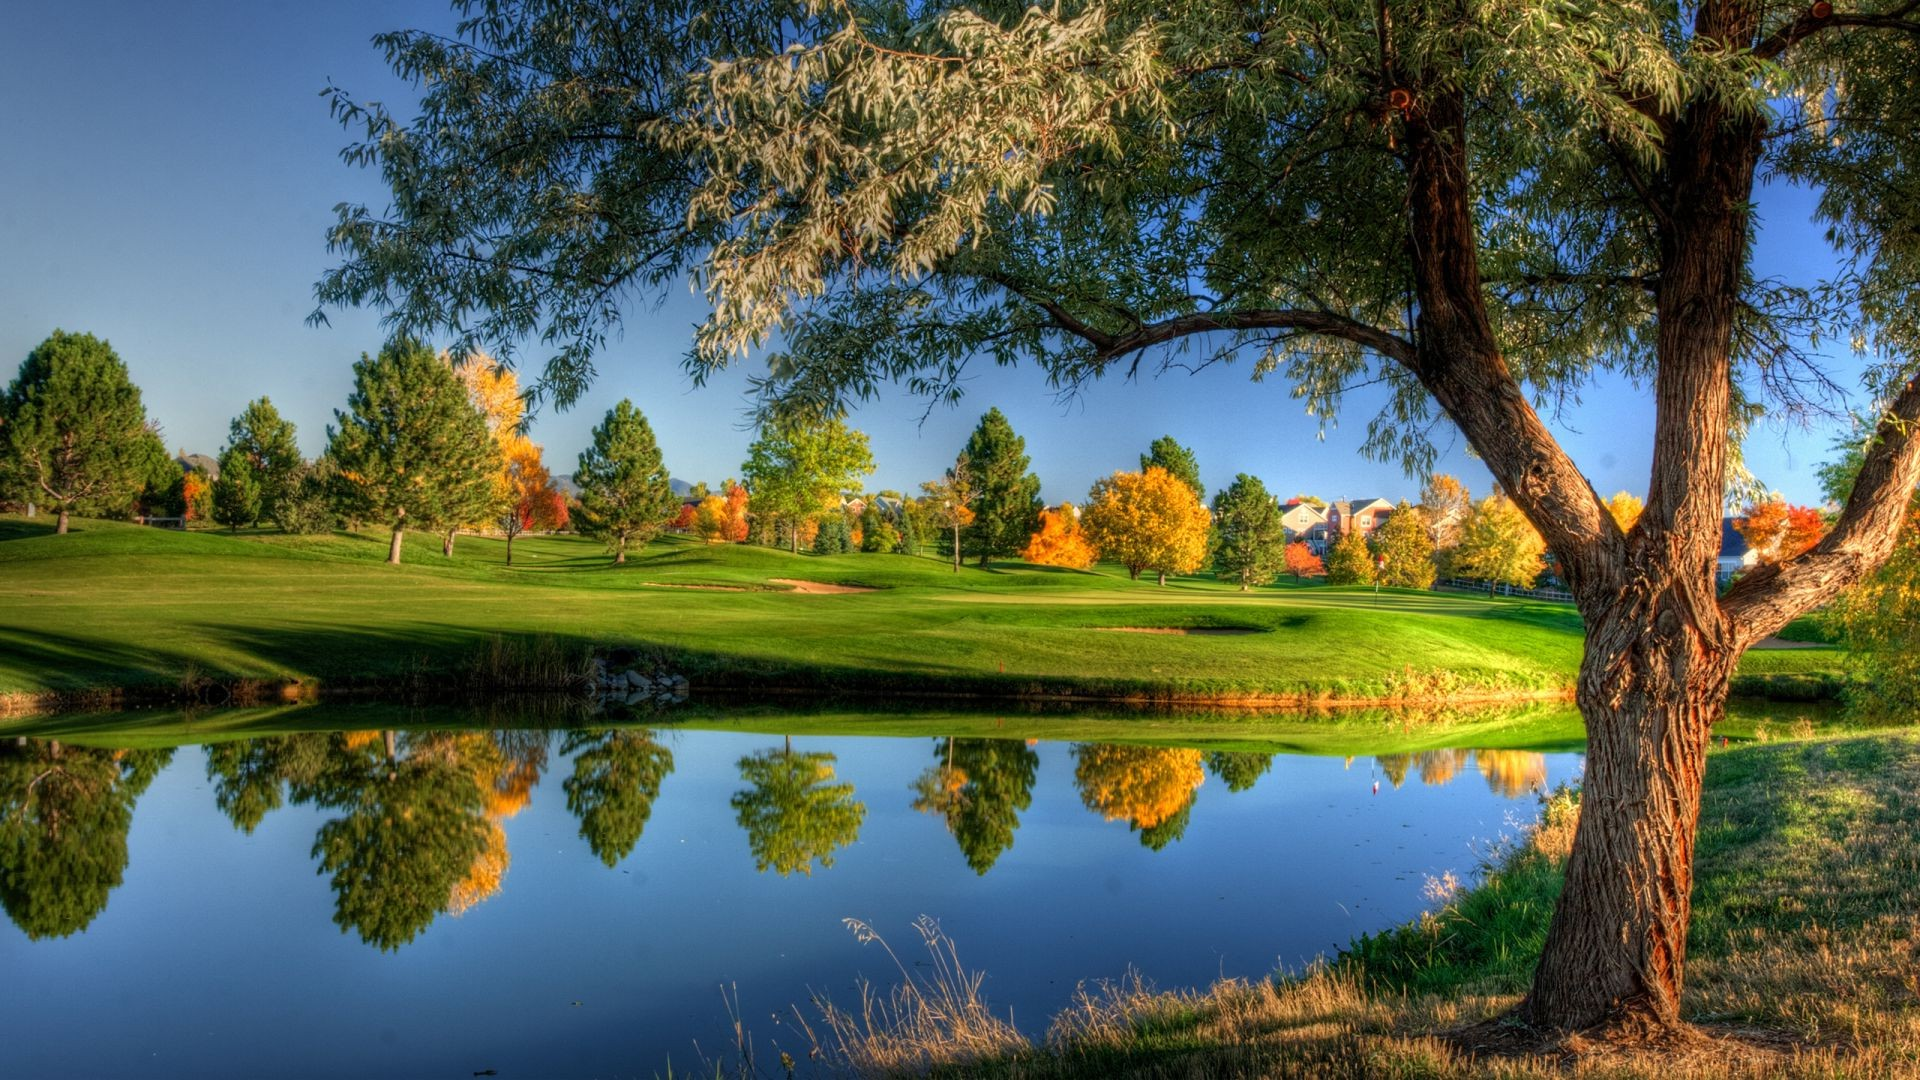 trees tree landscape lake grass nature outdoors sky pool scenic reflection water summer golf wood park fall river countryside idyllic